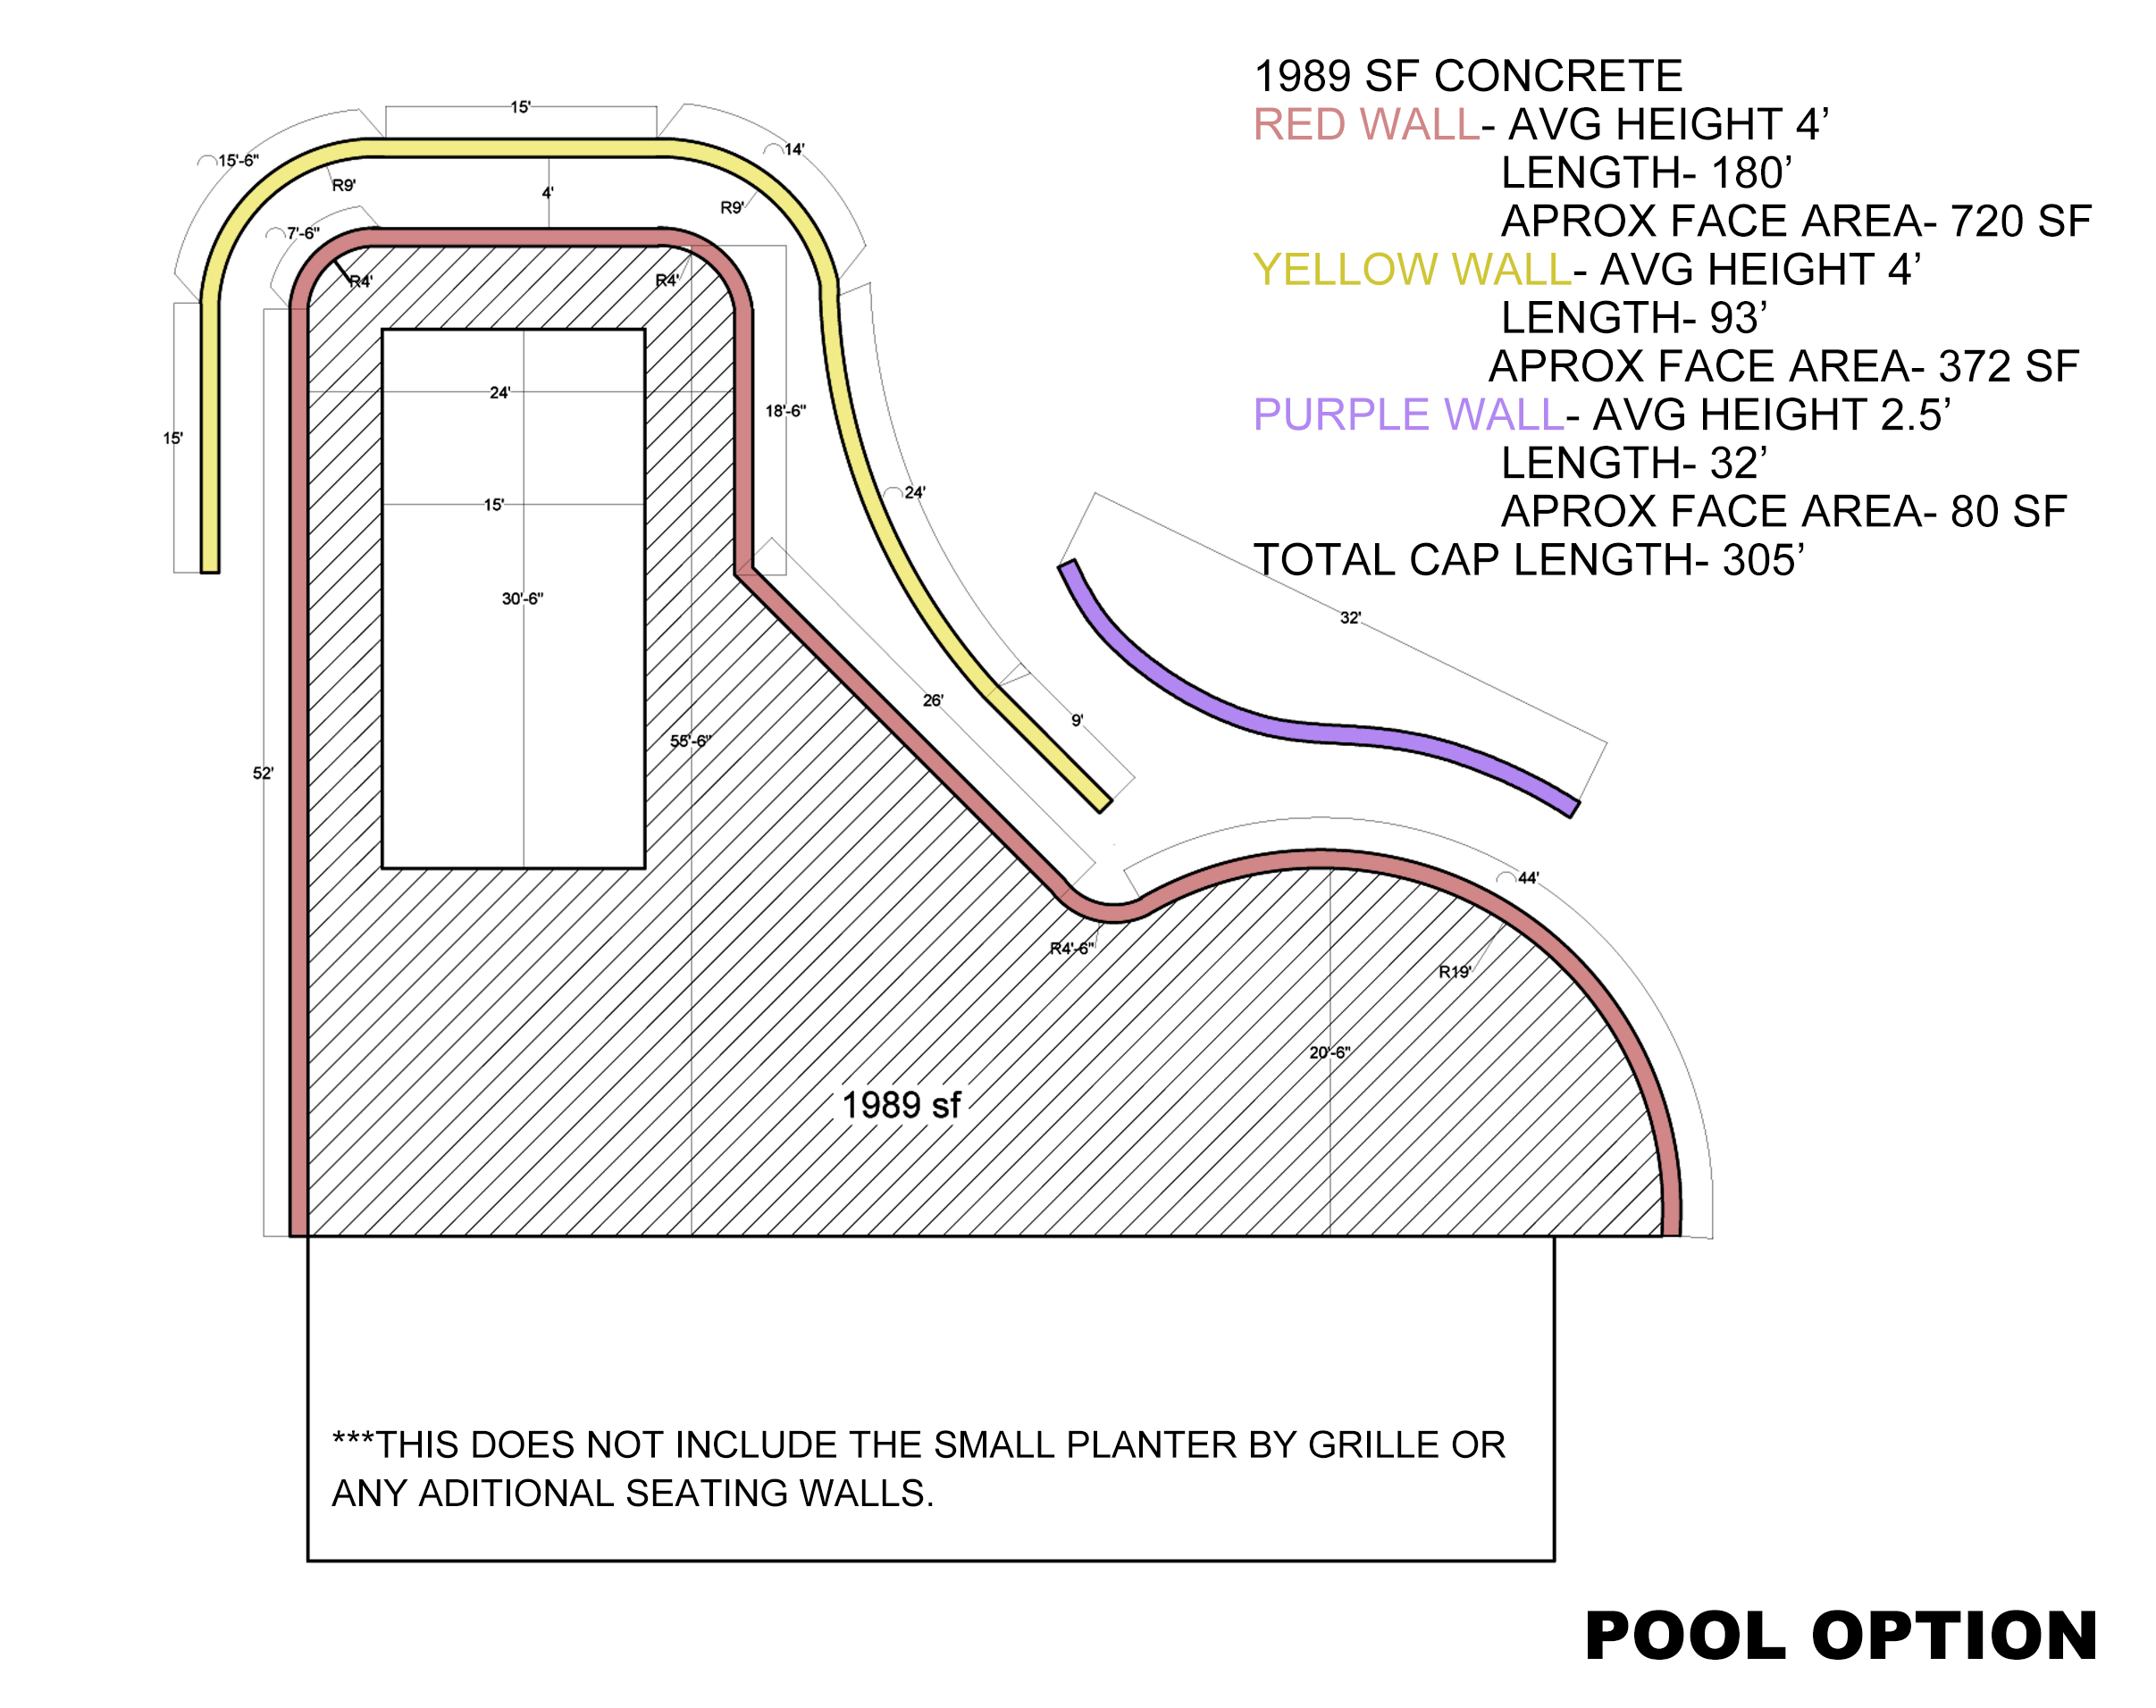 pool layout copy.jpg